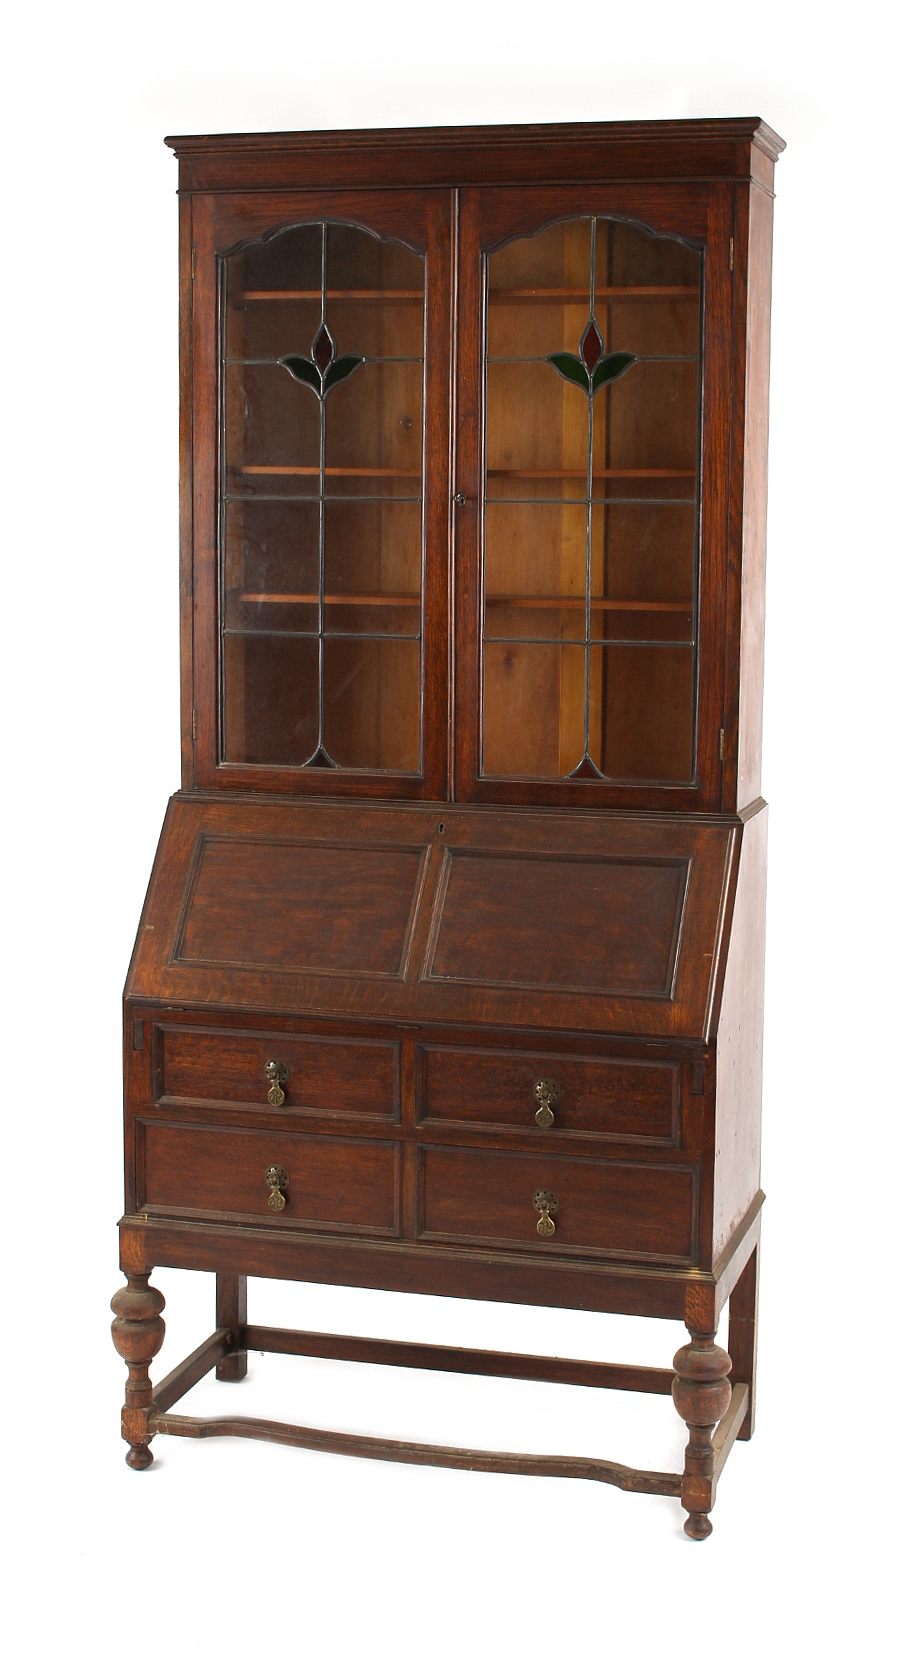 Property of a deceased estate - an oak bureau bookcase with glazed upper section, second quarter